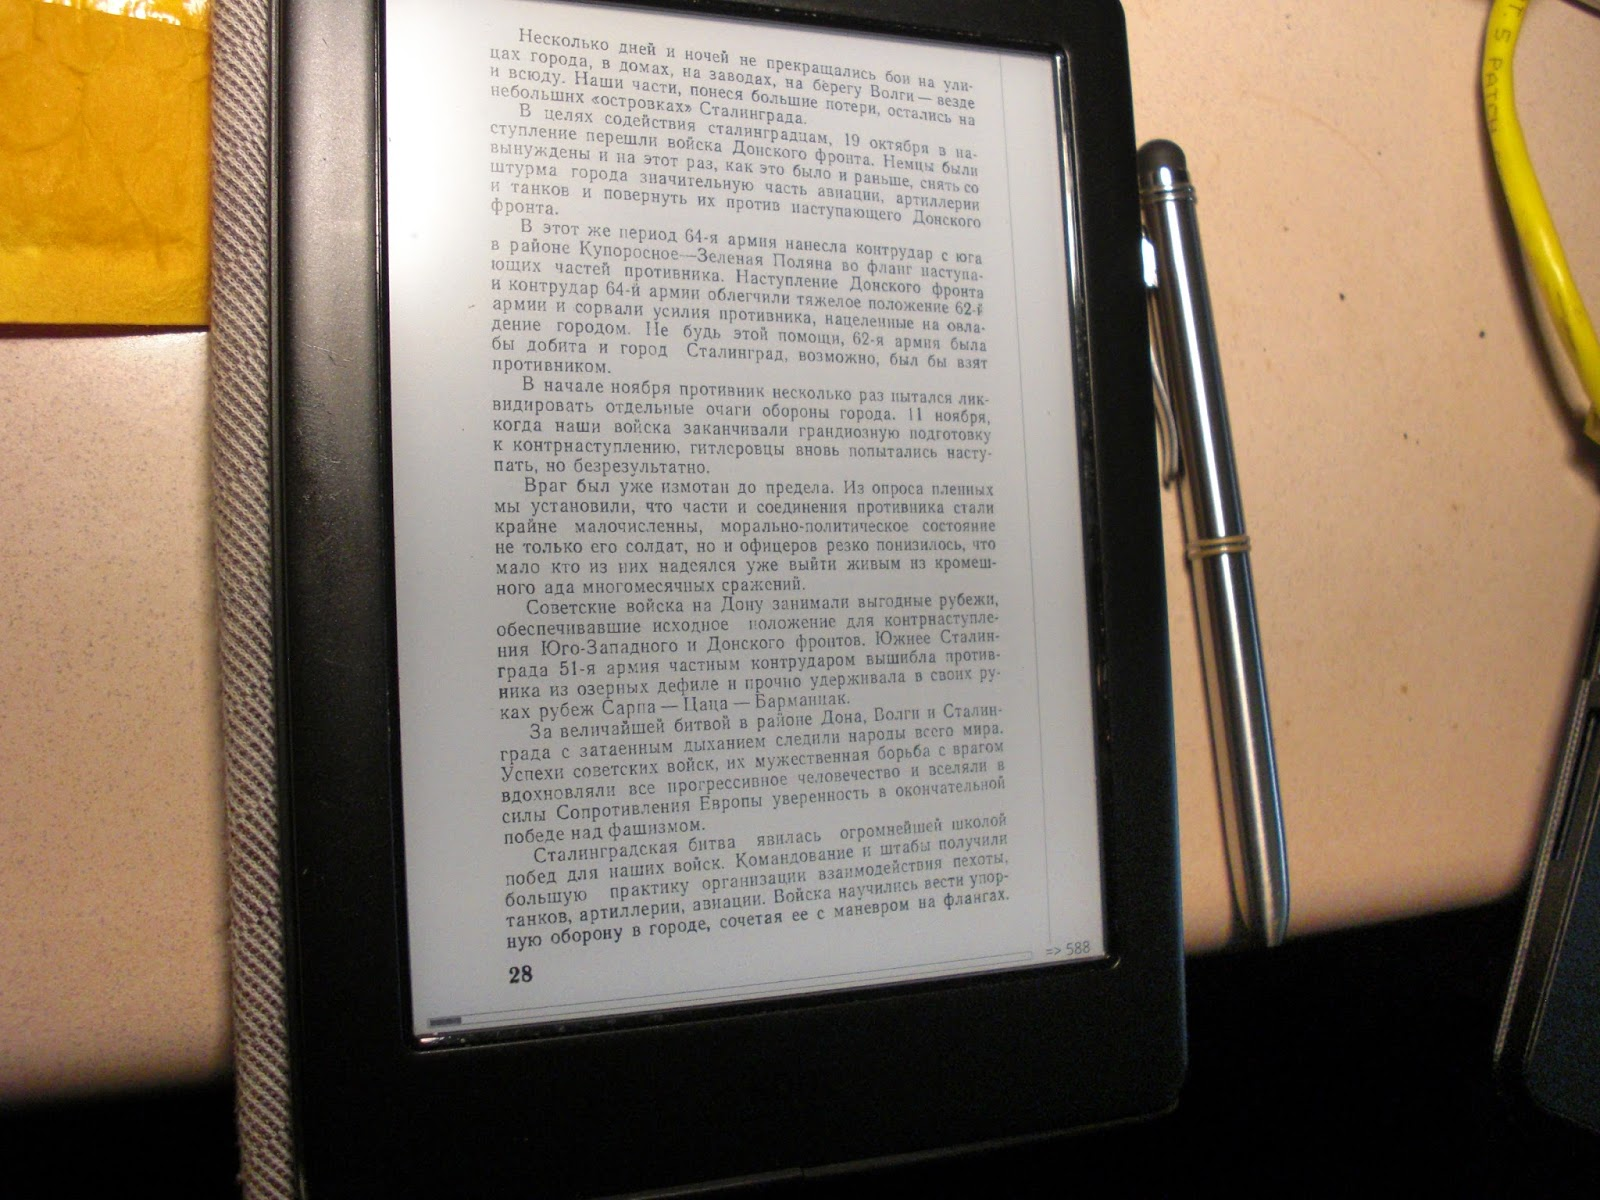 Coolreader for my Kobo Glo HD | Fine Oils